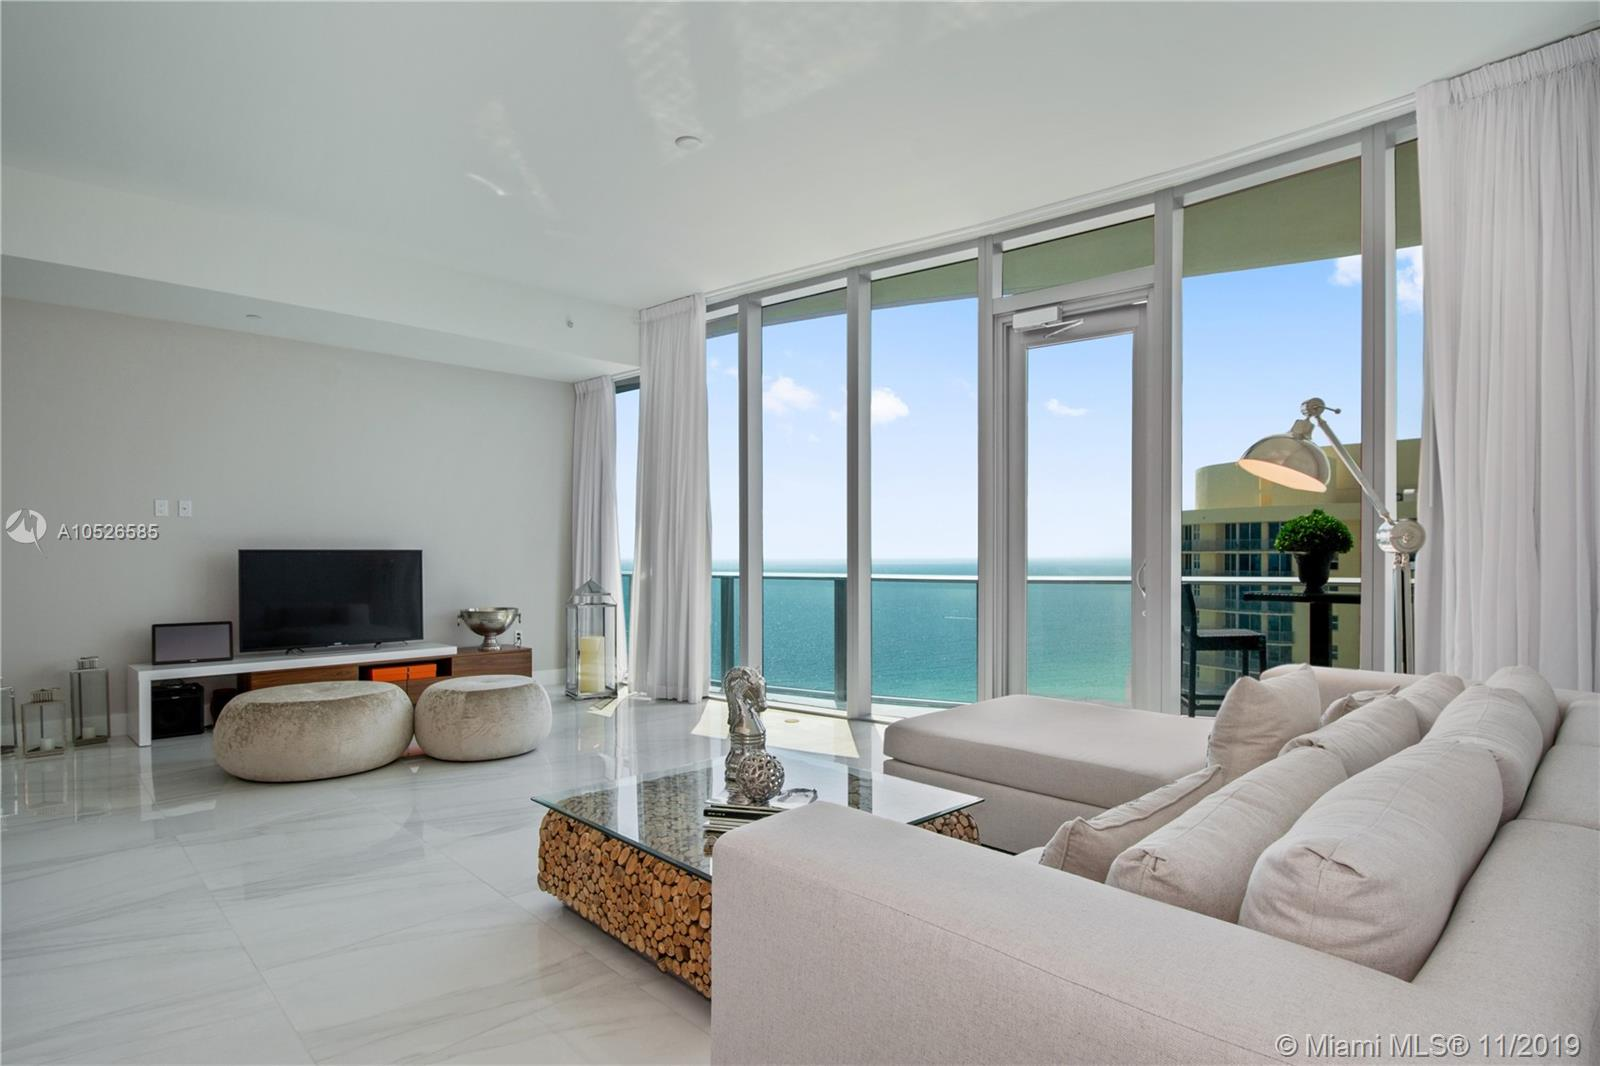 BRAND NEW Chateau Beach Contemporary Dream, Furnished to perfection- A Luxurious Beachfront Building w/ Captivating Direct Ocean + Miami Skyline Views. East + Southeast Views Cannot Be Blocked by Any Future Building!  Large 2 Bed/ 3 Bath + a Den or 3rd bedroom with full bathroom, State of the Art Open Kitchen, White Marble Floors Throughout, Huge Private Balcony that Feels Like It's Right Out On The Crystal Blue Water! High Ceilings Throughout, Both Bedrooms w/ Stunning Marble Baths. Spectacular New Residence Is A Dream! - Show + Sell! A quiet, elegant, exclusive building offering luxury & lifestyle w/ 5 Star Amenities incl. a relaxation terrace w/ aromatherapy jacuzzi, Beach & Pool service, Cigar Room, Home Theater, Wine Lounge, Concierge, and much more!